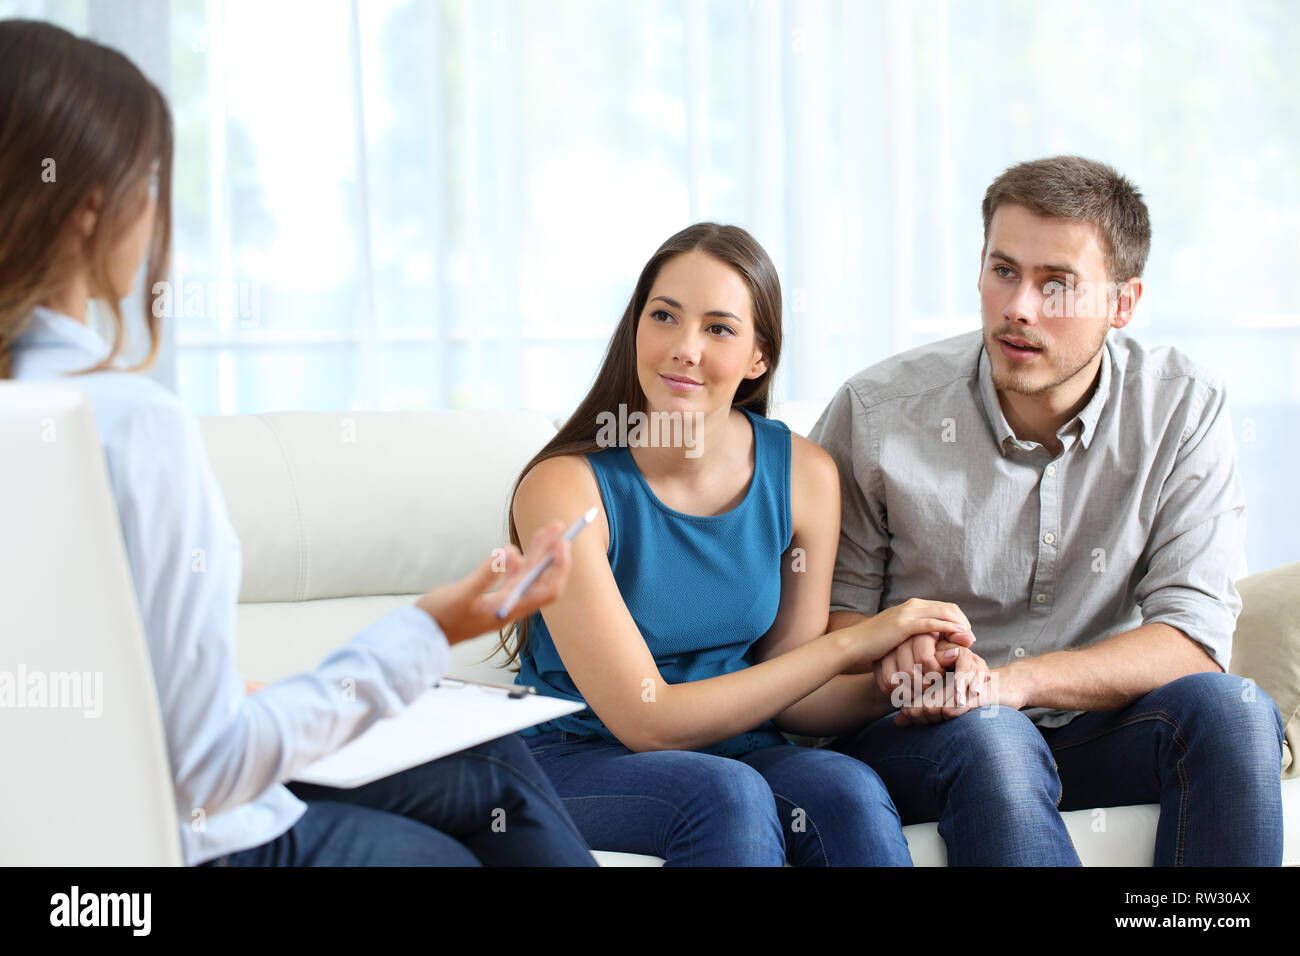 Attentive marriage during a couple therapy sitting on a couch at home or consultation - Stock Image